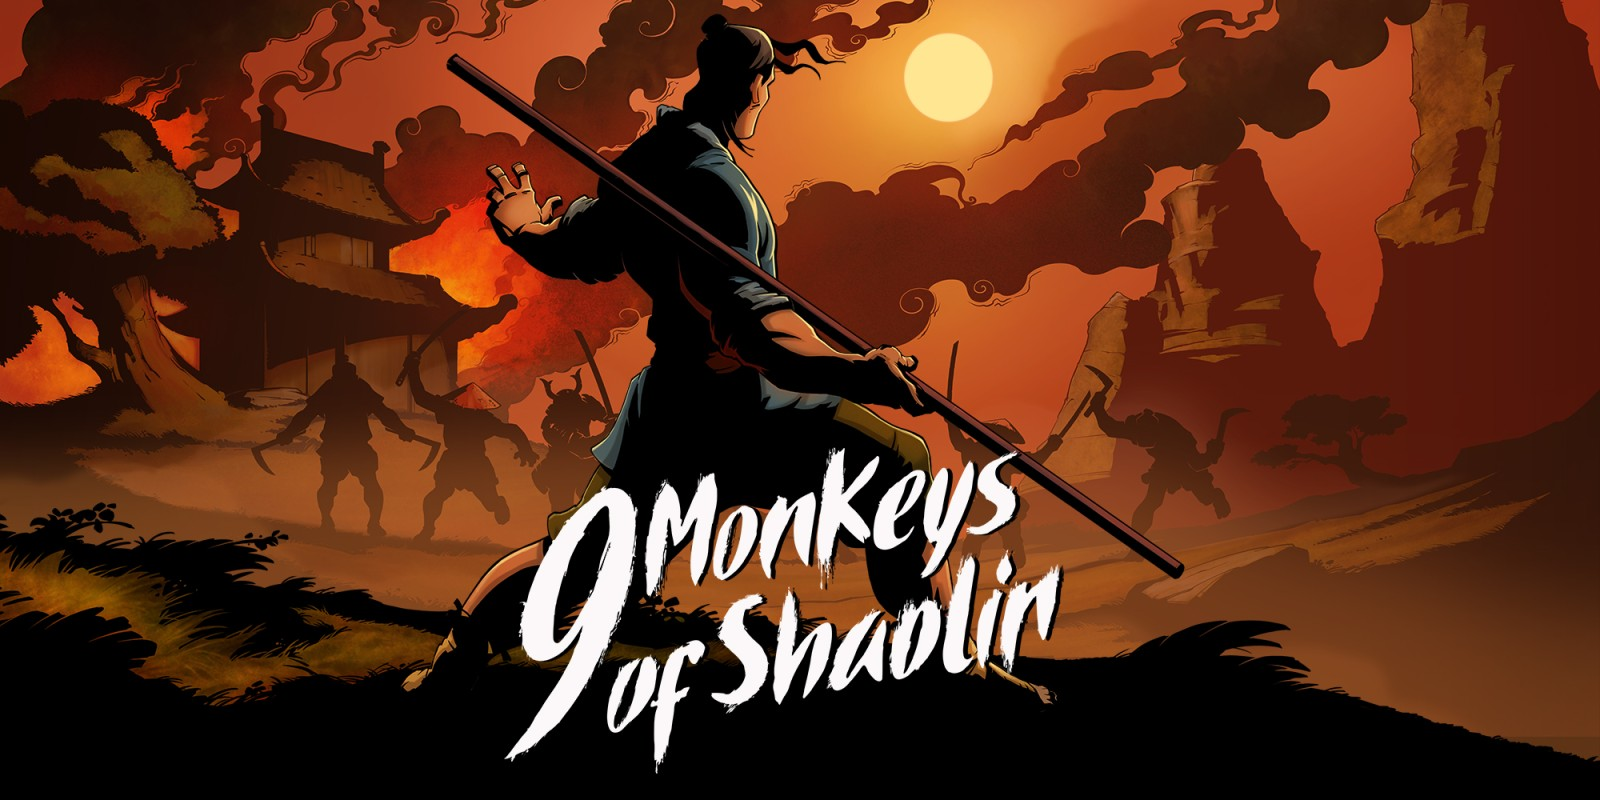 9 Monkeys of Shaolin Nintendo Switch Review